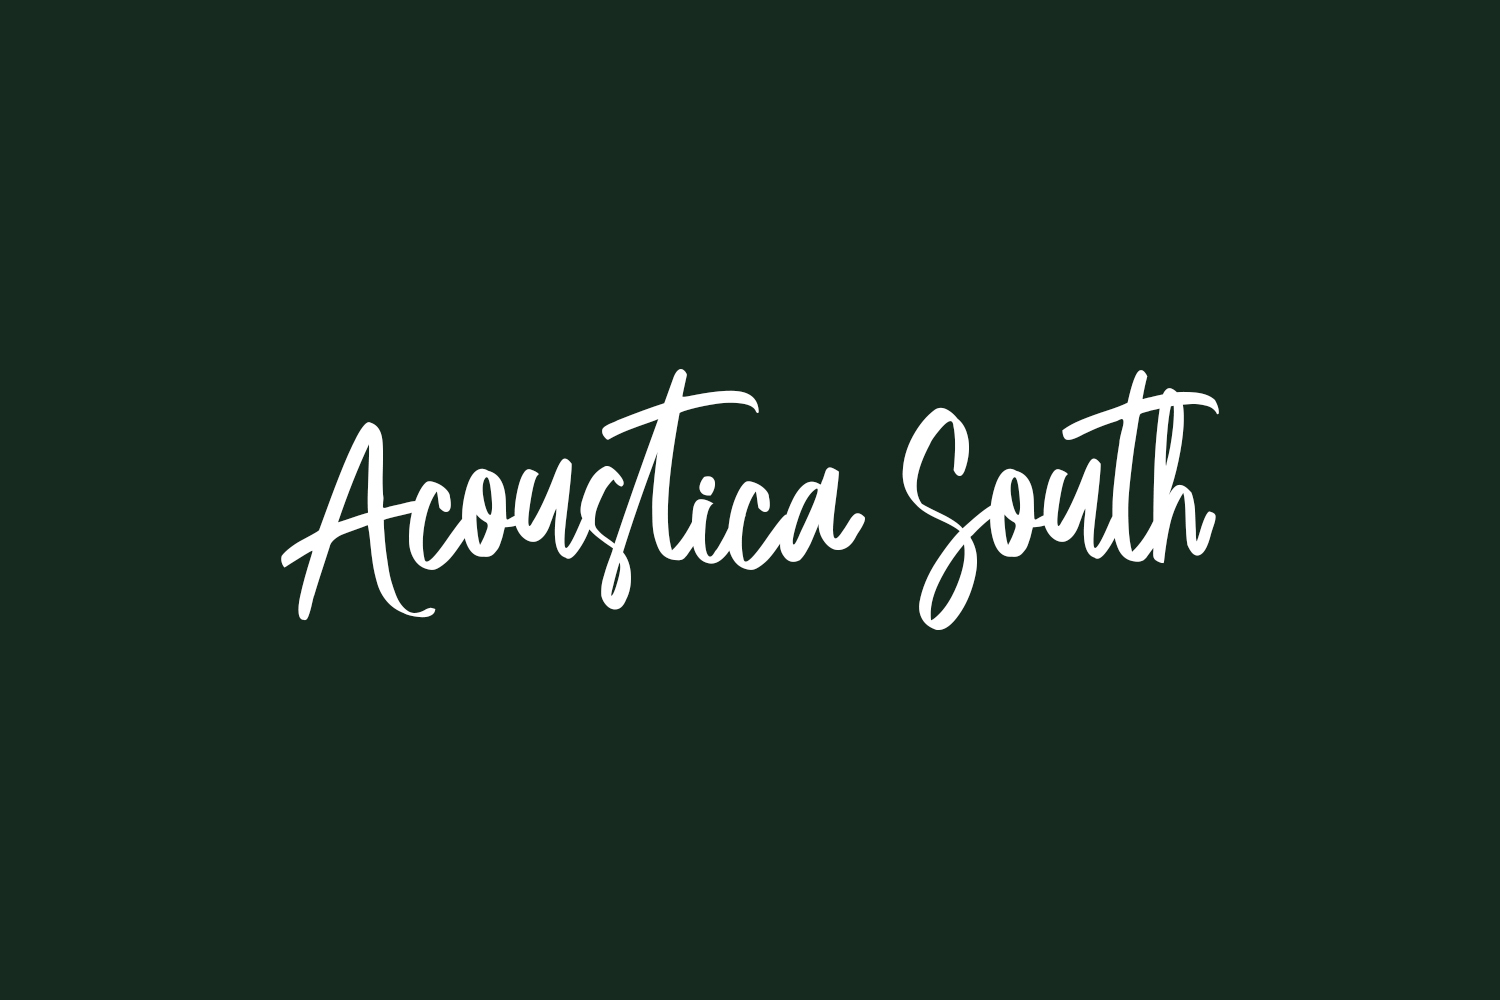 Acoustica South Free Font